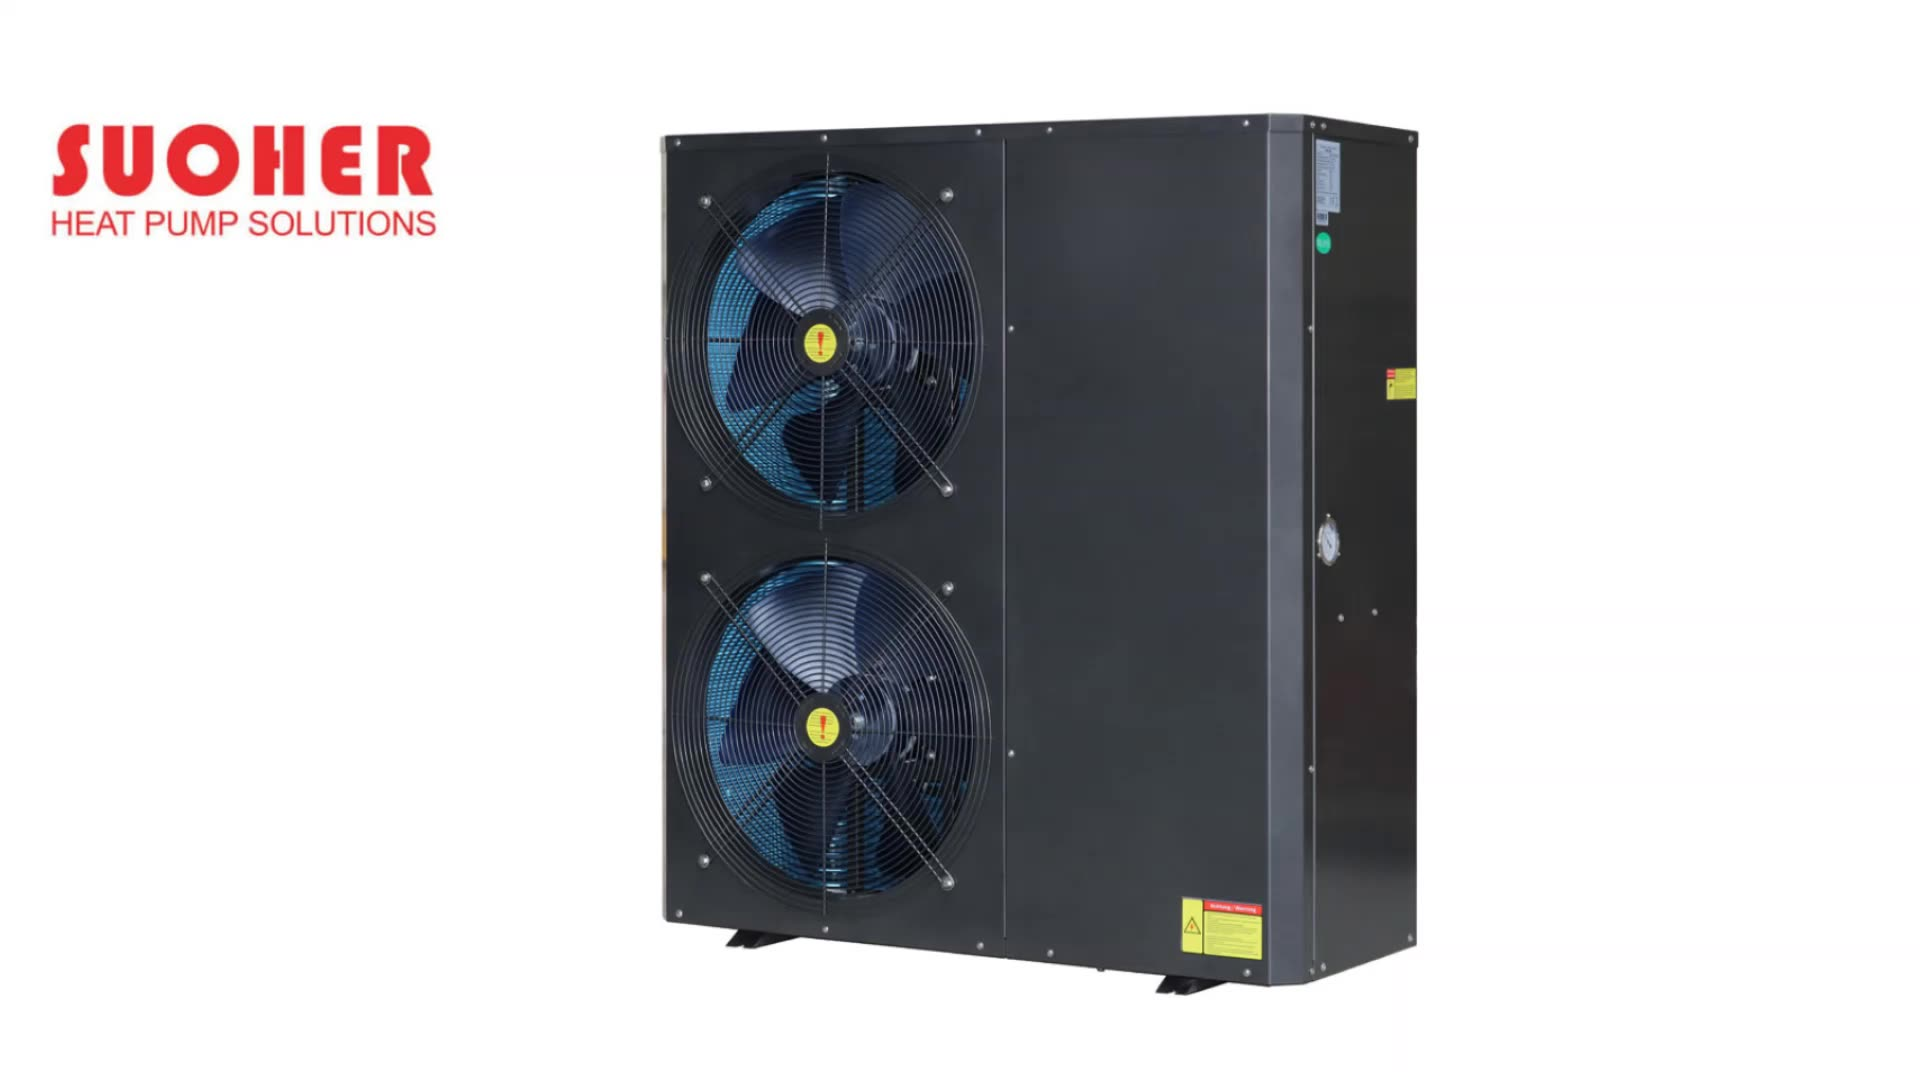 Ambient -25c Winter 55c Heating Room Save Power evi air source heat pump